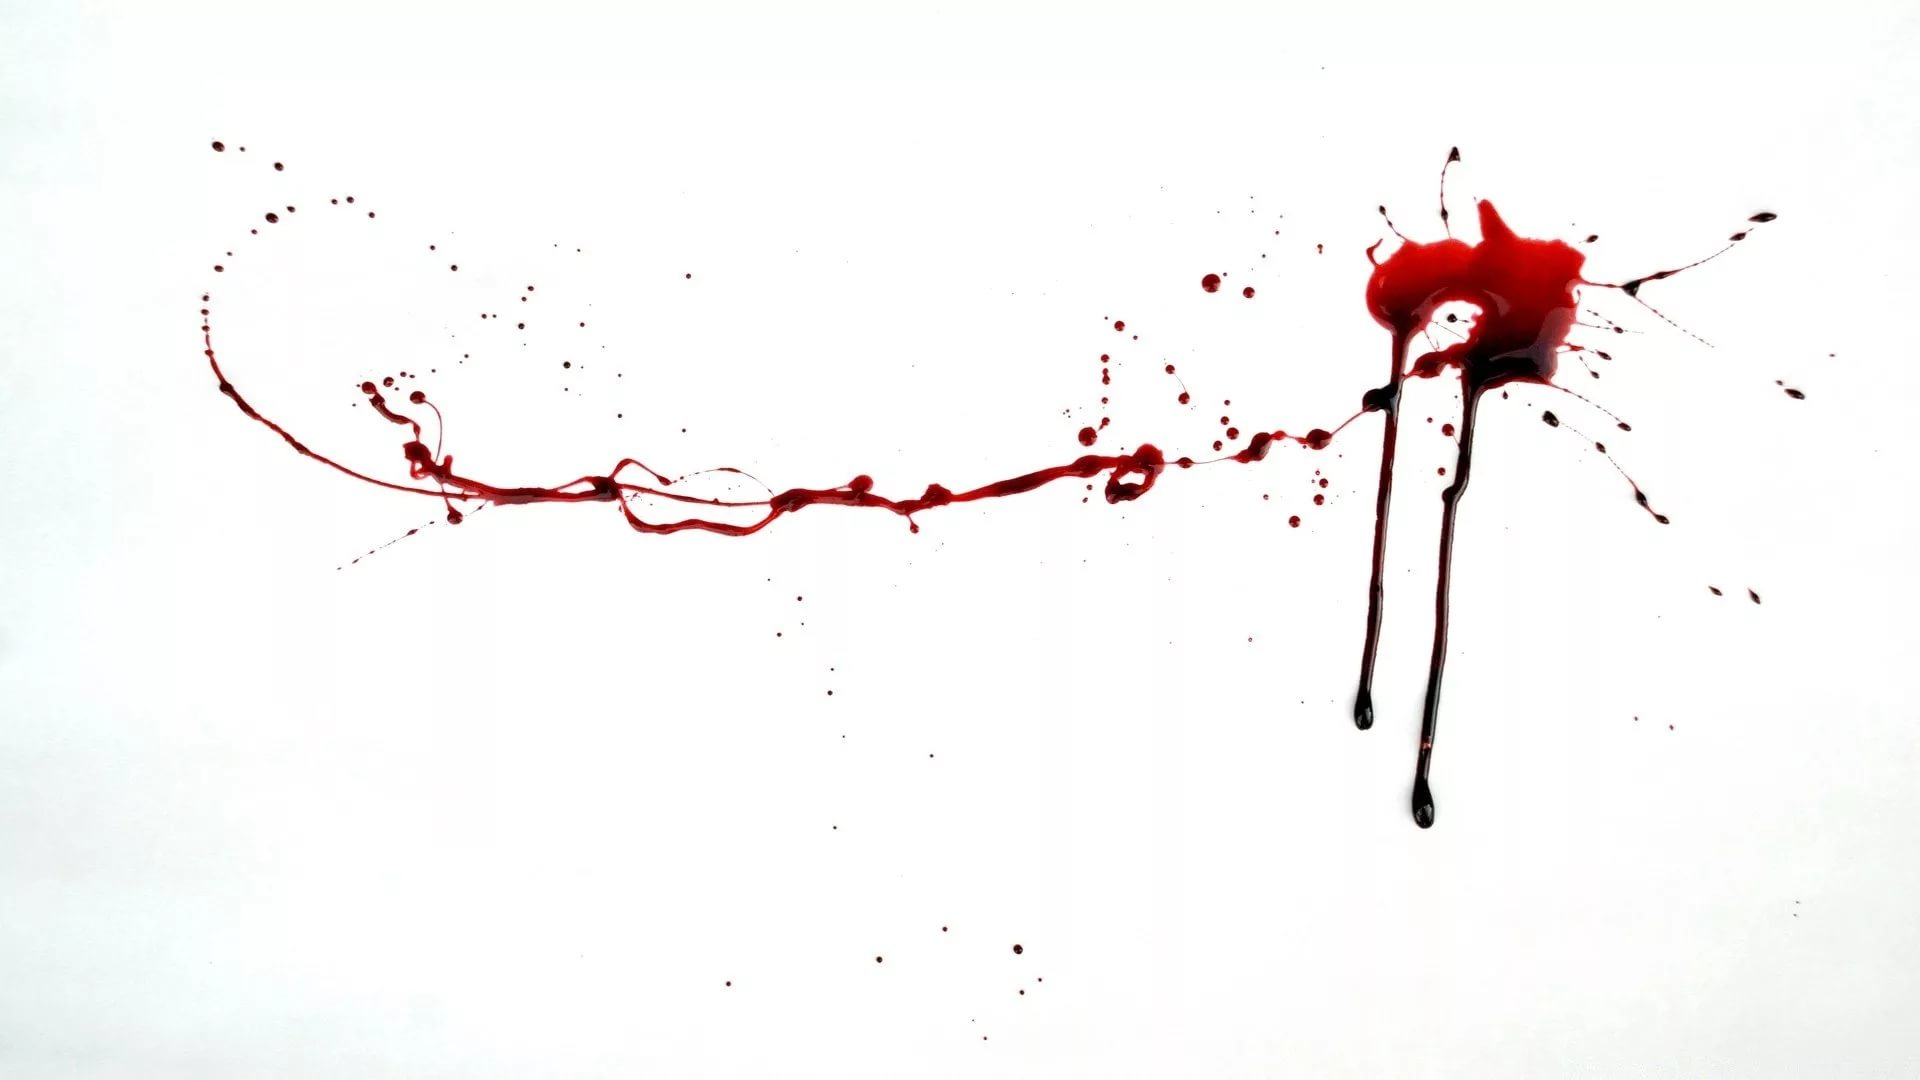 Blood hd wallpaper